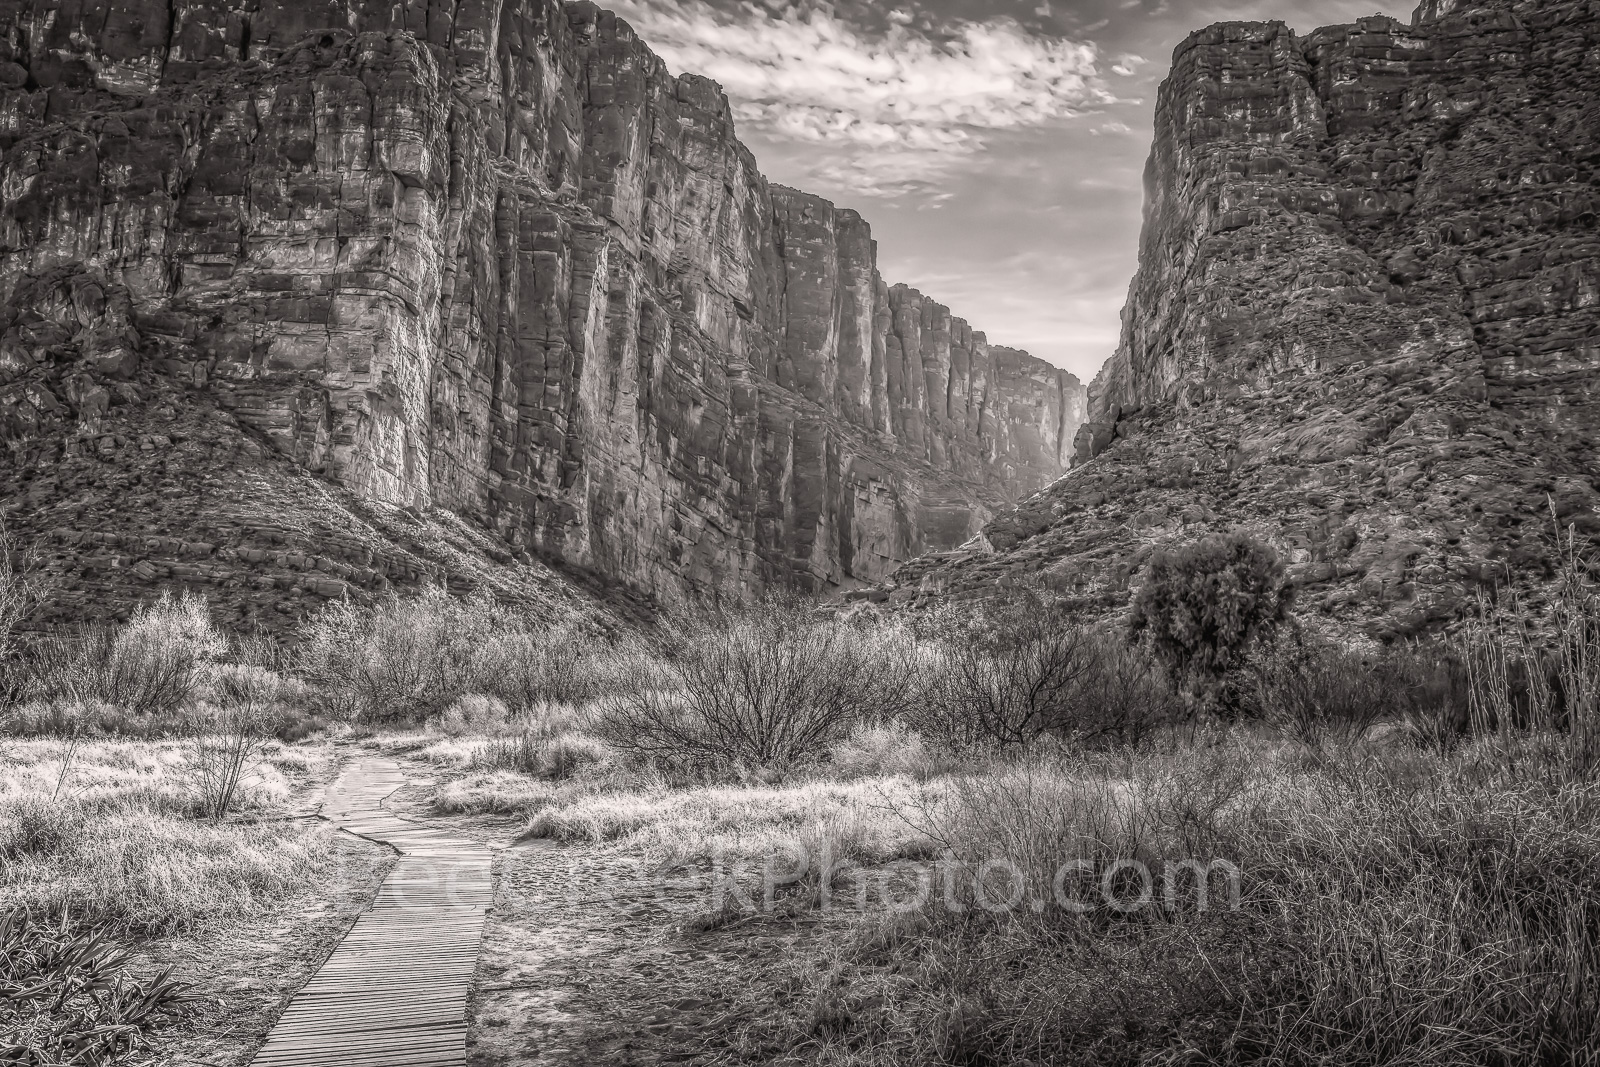 Santa Elena Canyon, black and white, bw, Big bend national park, black and white, bw, texas landscape, river rocks, blue sky, nice clouds, canyons, mountains, Mexico, Ross Maxwell scenic drive, Chiso , photo